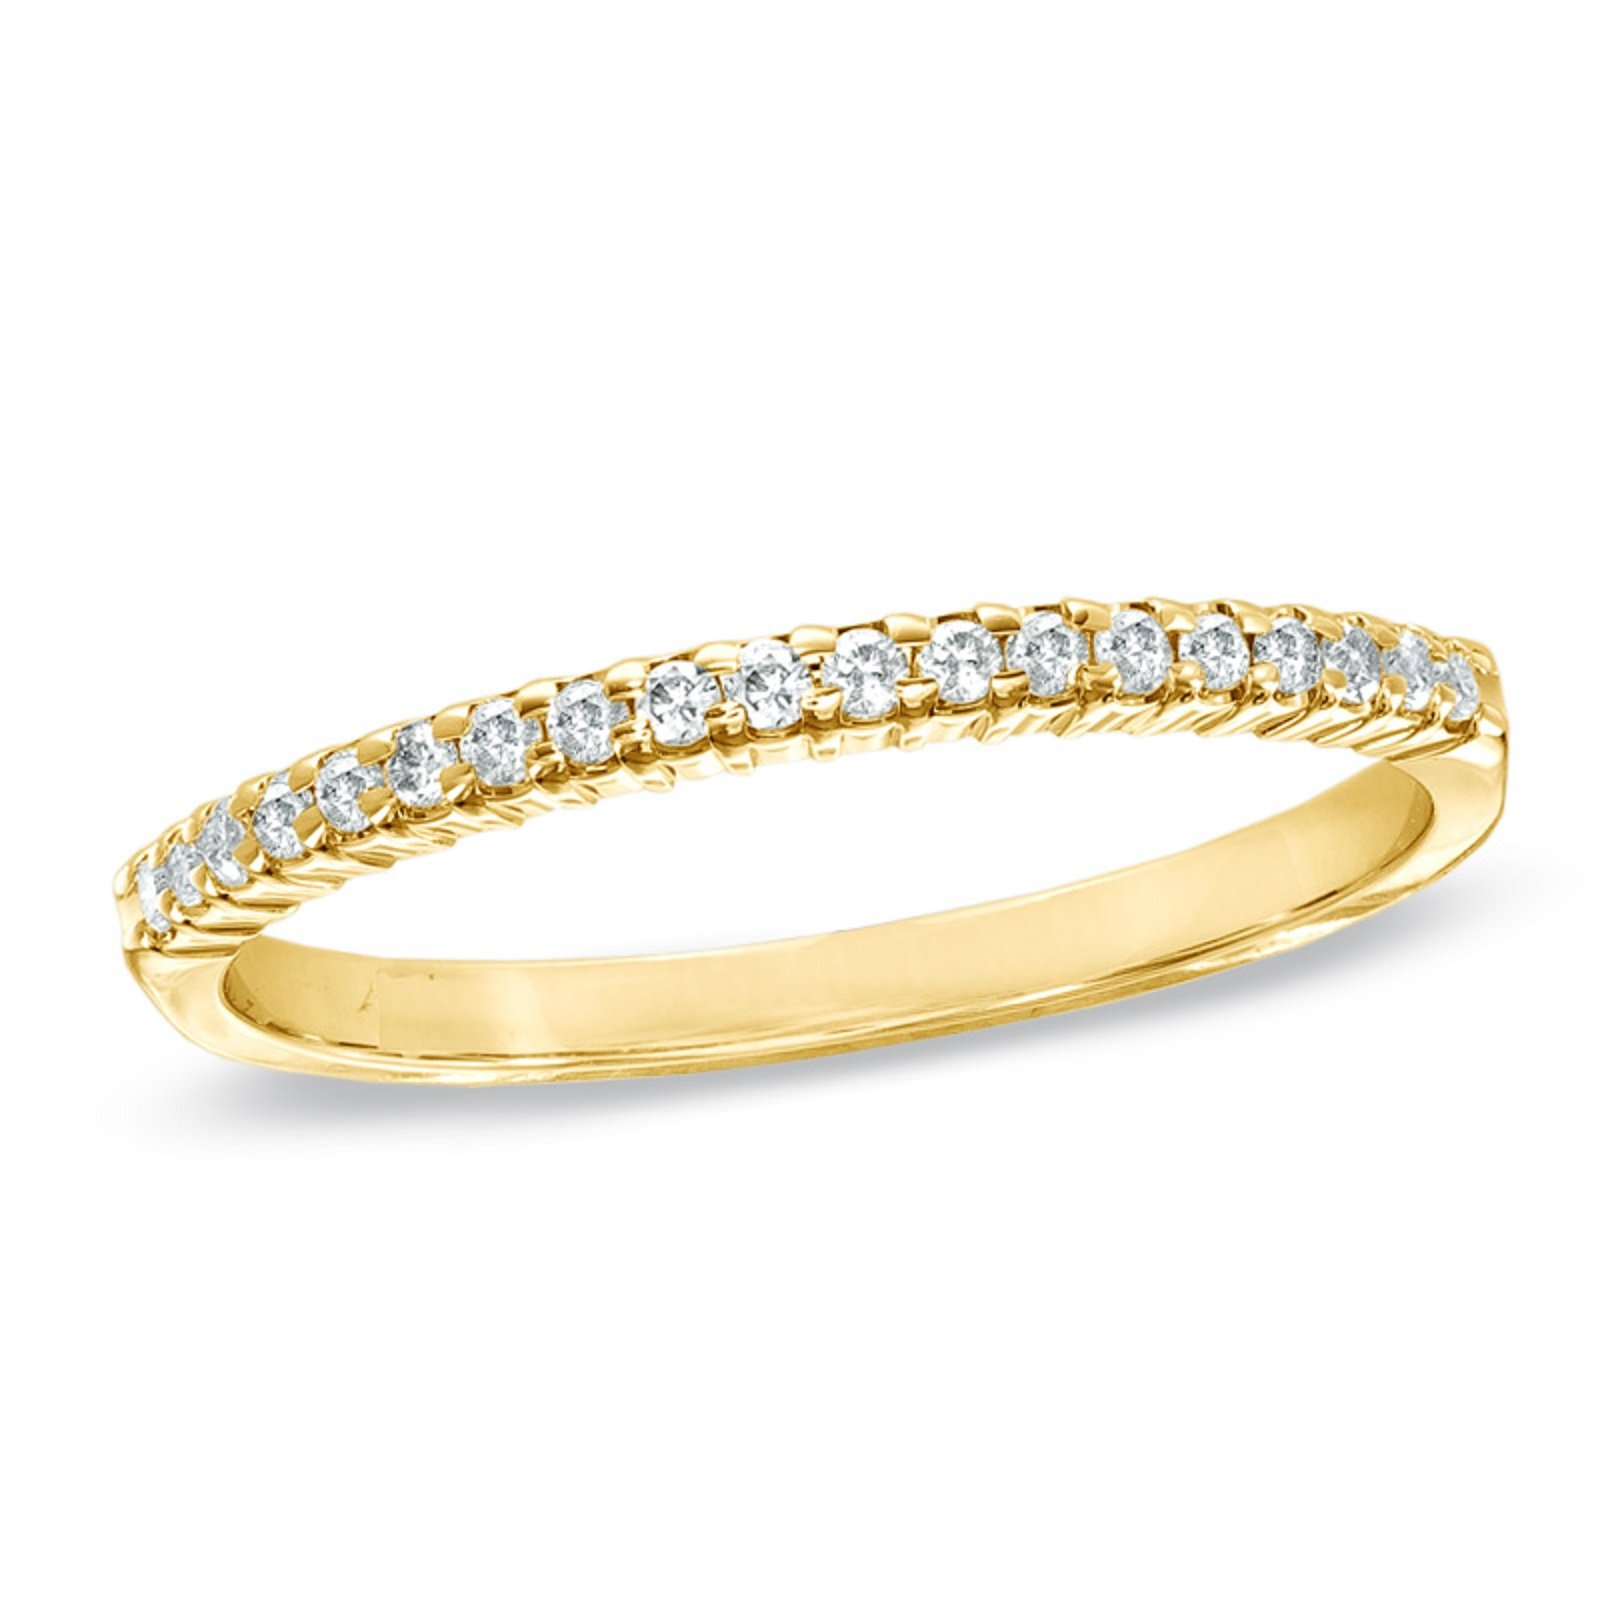 Clara Pucci 0.85 ct Brilliant Round Cut Wedding Promise Bridal Engagement Band in Solid 14K Yellow Gold, Size 10.25 by Clara Pucci